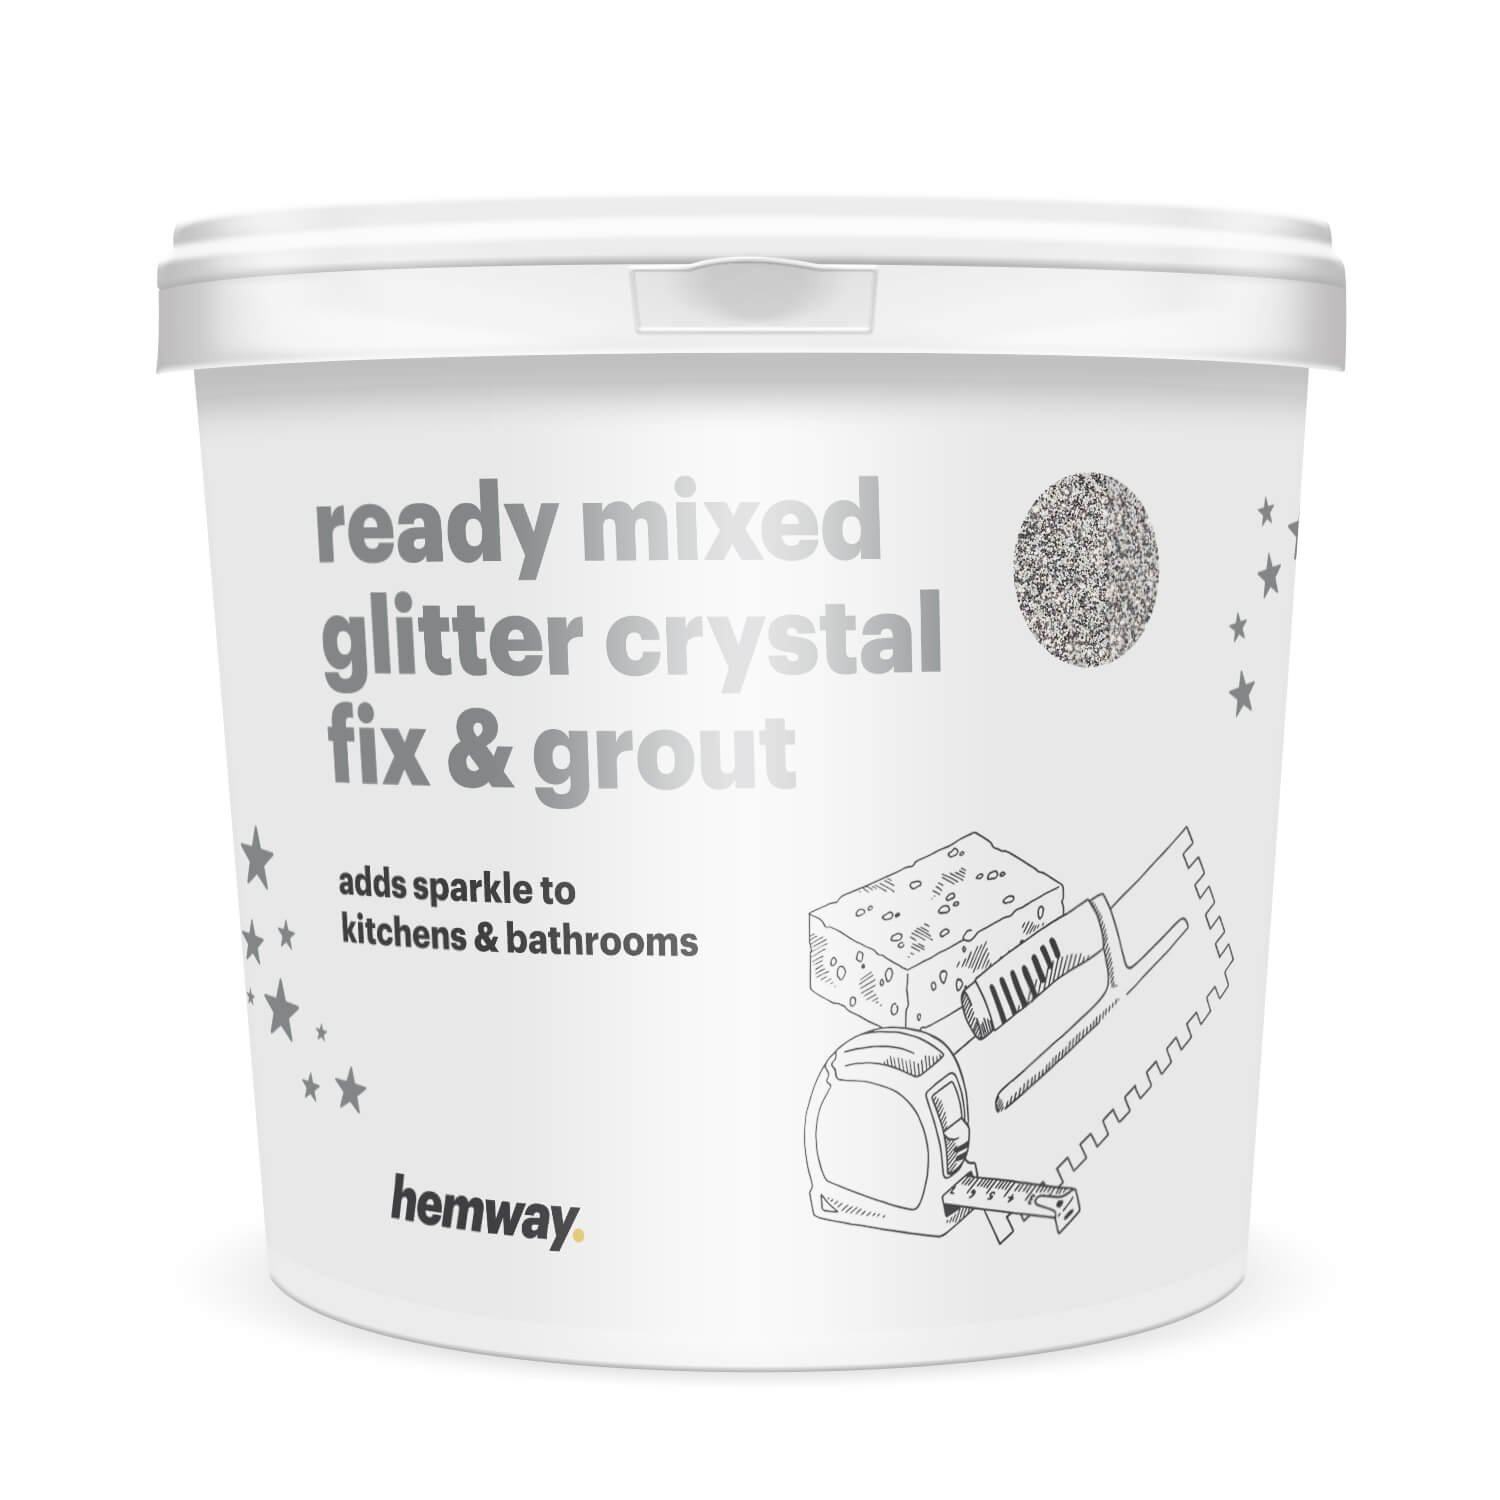 Hemway 4.5kg / 10lb Ready Mixed Glitter Crystal Fix & Grout (Grey Grout / Silver Glitter) for Tiles, Wet Room, Bathroom, Kitchen - Easy to use - High Heat Resistant for Underfloor Heating